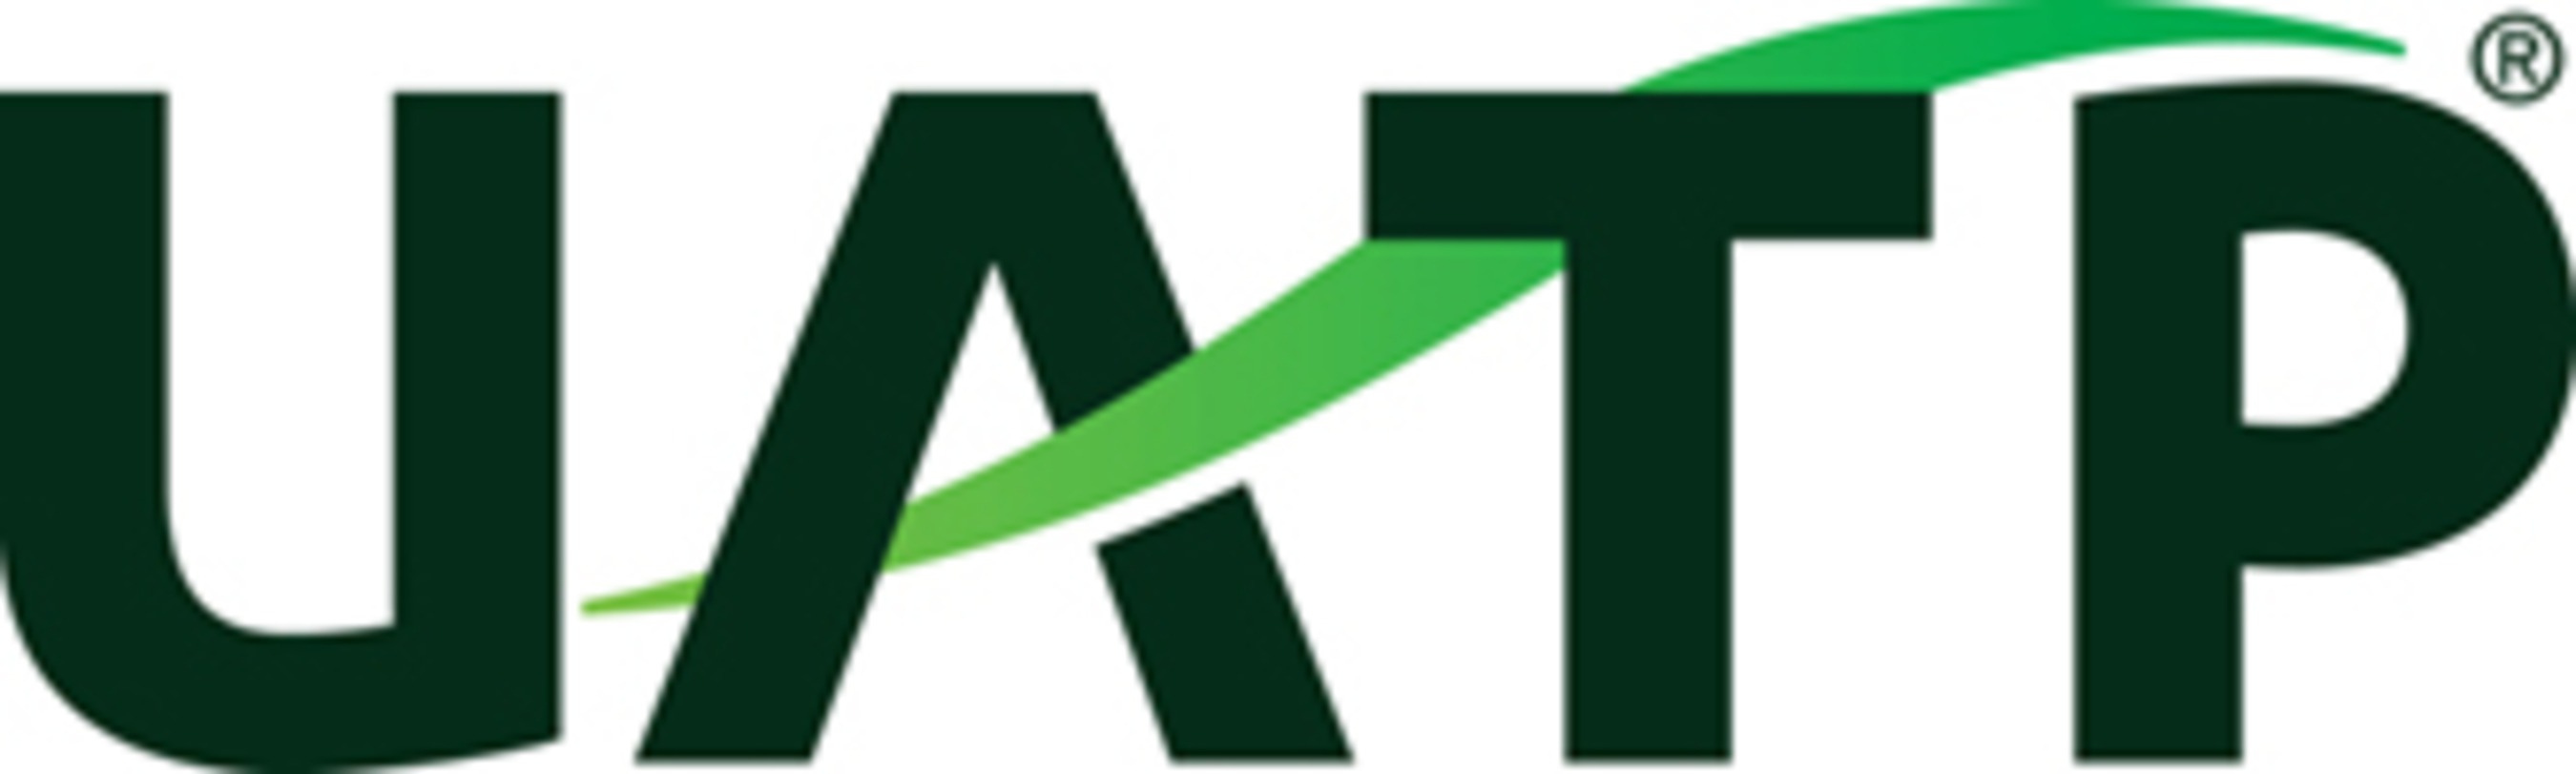 UATP is a global travel payment network. UATP accounts are actively issued by 15 member airlines and accepted as a form of payment for corporate business travel by more than 200 airlines worldwide. Airlines currently issuing UATP accounts include Aer Lingus, Air New Zealand, Alitalia, American Airlines, Austrian Airlines, British Airways, Continental Airlines, Delta Air Lines, Japan Airlines, KLM Royal Dutch Airlines, Lufthansa German Airlines, Qantas Airways, Ltd., Scandinavian Airlines System...